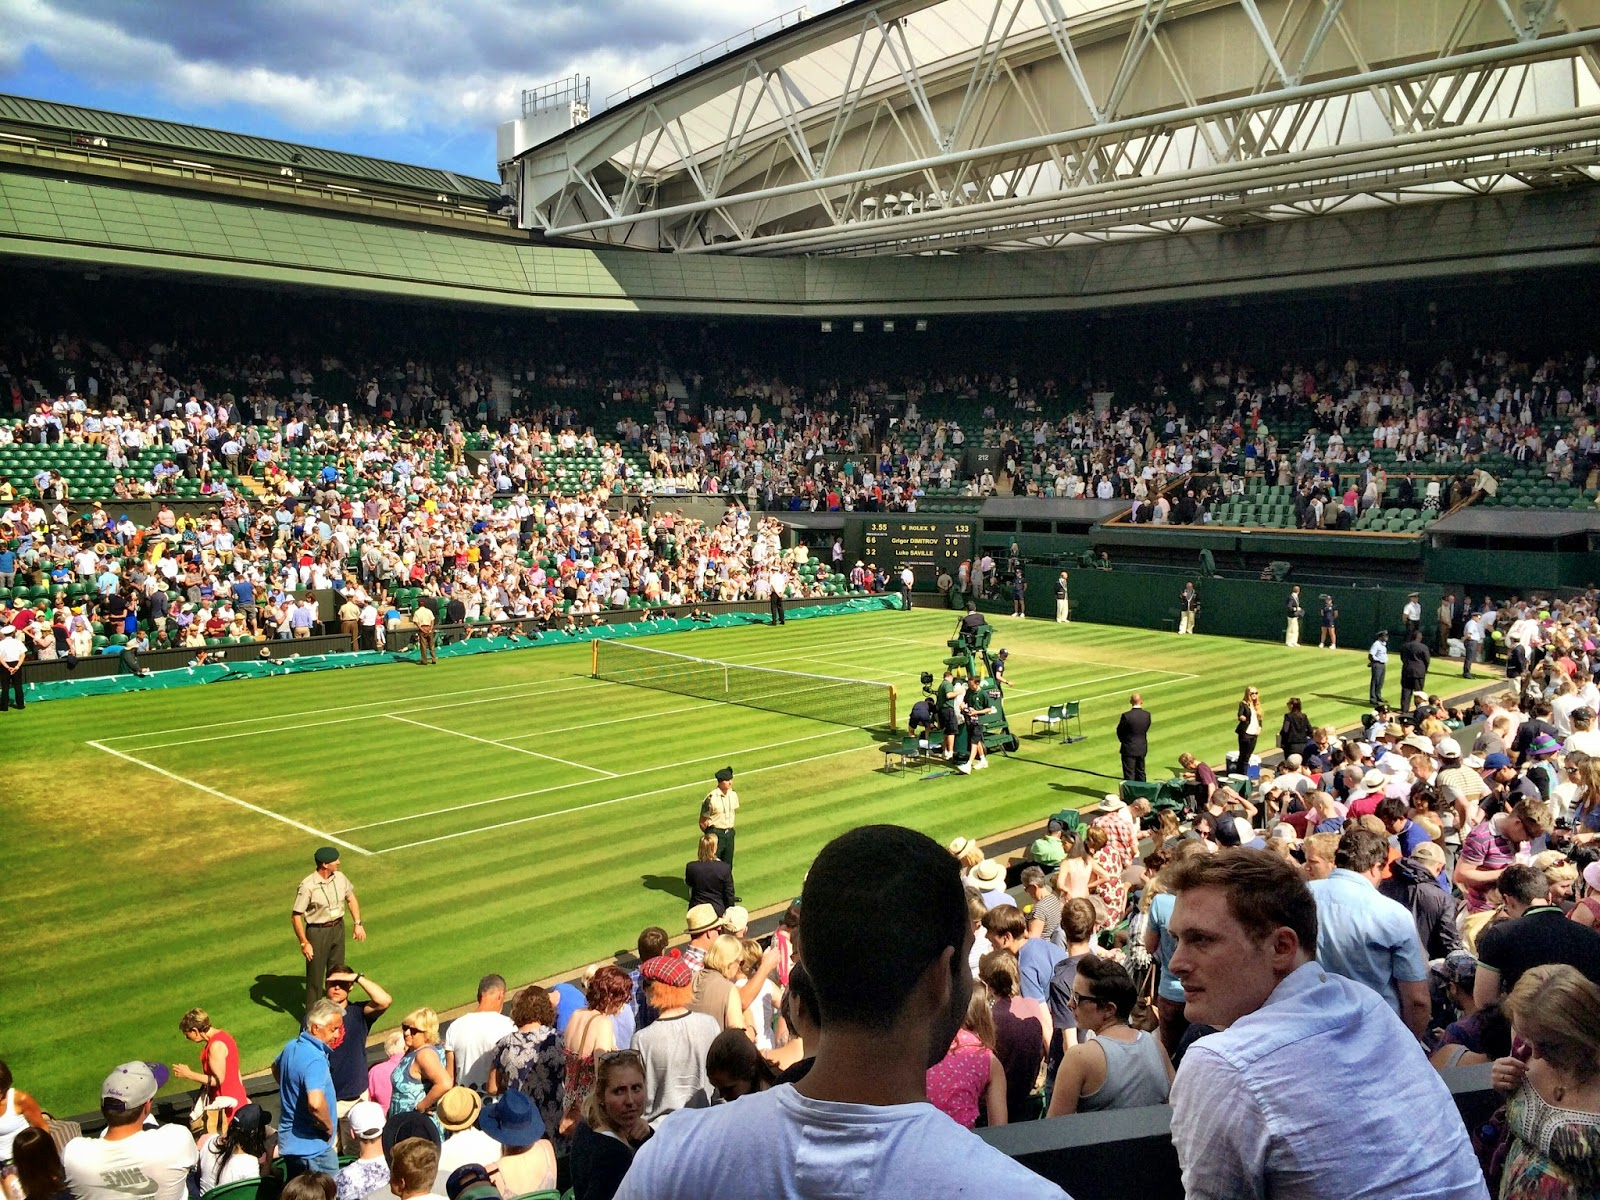 A close up of Centre Court, Wimbledon 2014